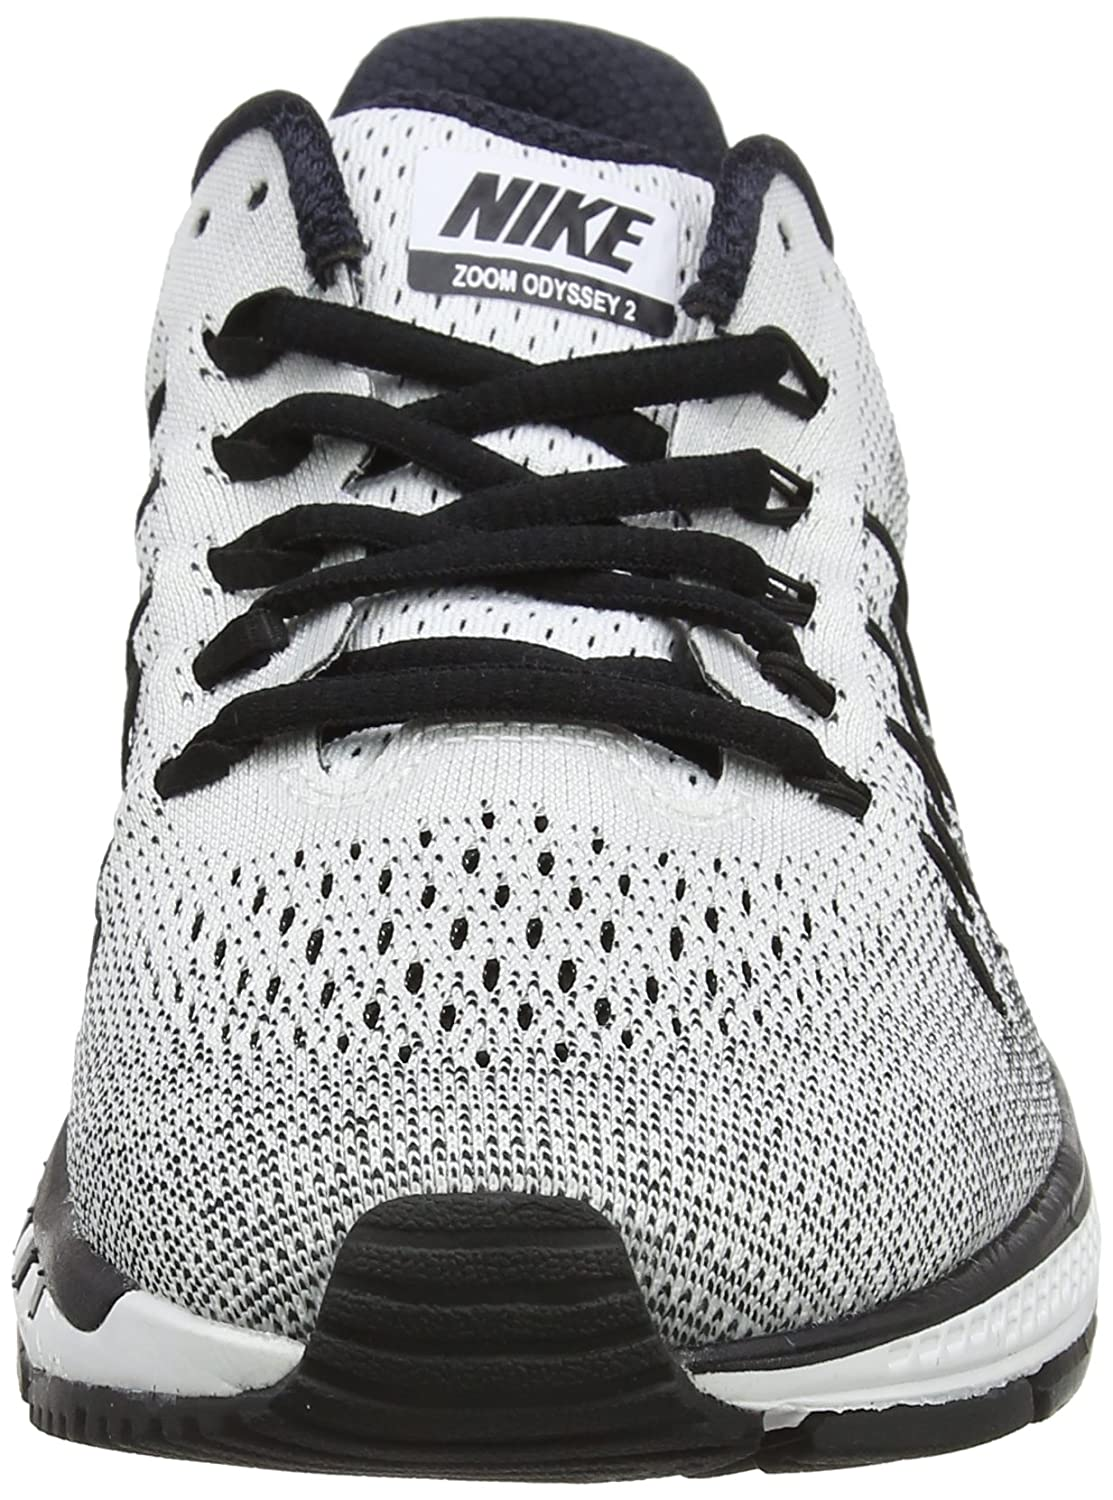 3ae87a8f44b Nike Women s WMNS Air Zoom Odyssey 2 Running Shoes  Amazon.co.uk  Shoes    Bags